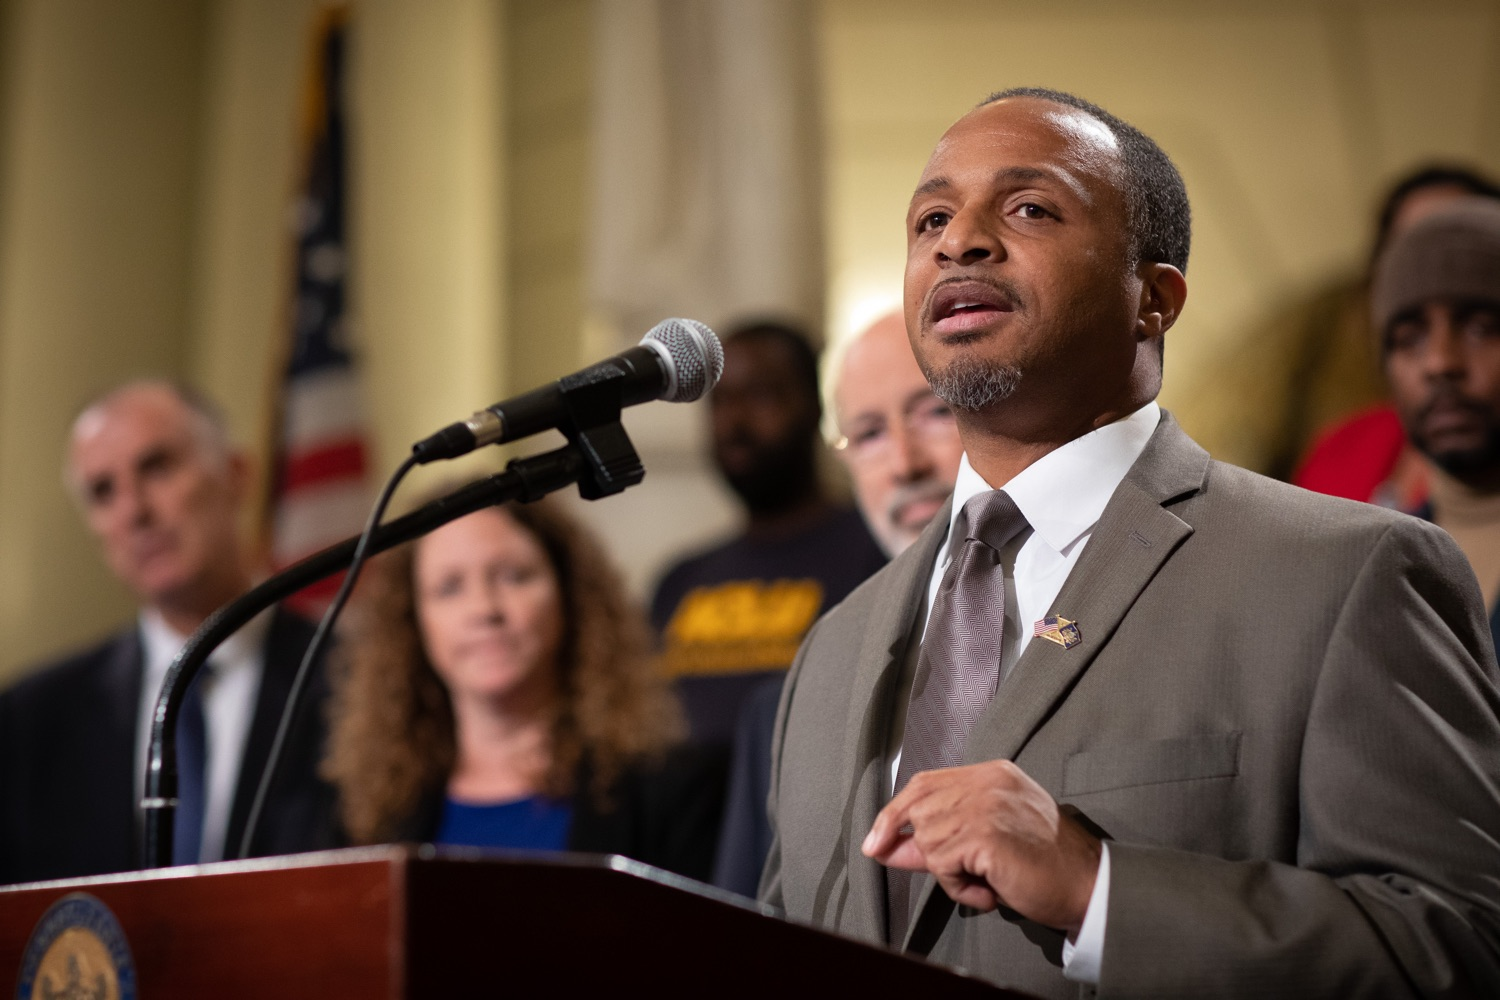 """<a href=""""http://filesource.abacast.com/commonwealthofpa/photo/17601_gov_right_on_crime_dz_019.jpg"""" target=""""_blank"""">⇣Download Photo<br></a>Deputy Secretary of Corrections Christian Stephens speaking at the event. Governor Tom Wolf was joined by Deputy Secretary of Corrections Christian Stephens and national criminal justice reform advocates today in the Capitol Rotunda to push for commonsense probation reforms that address probation sentences and probation lengths.  Harrisburg, PA  November 18, 2019"""